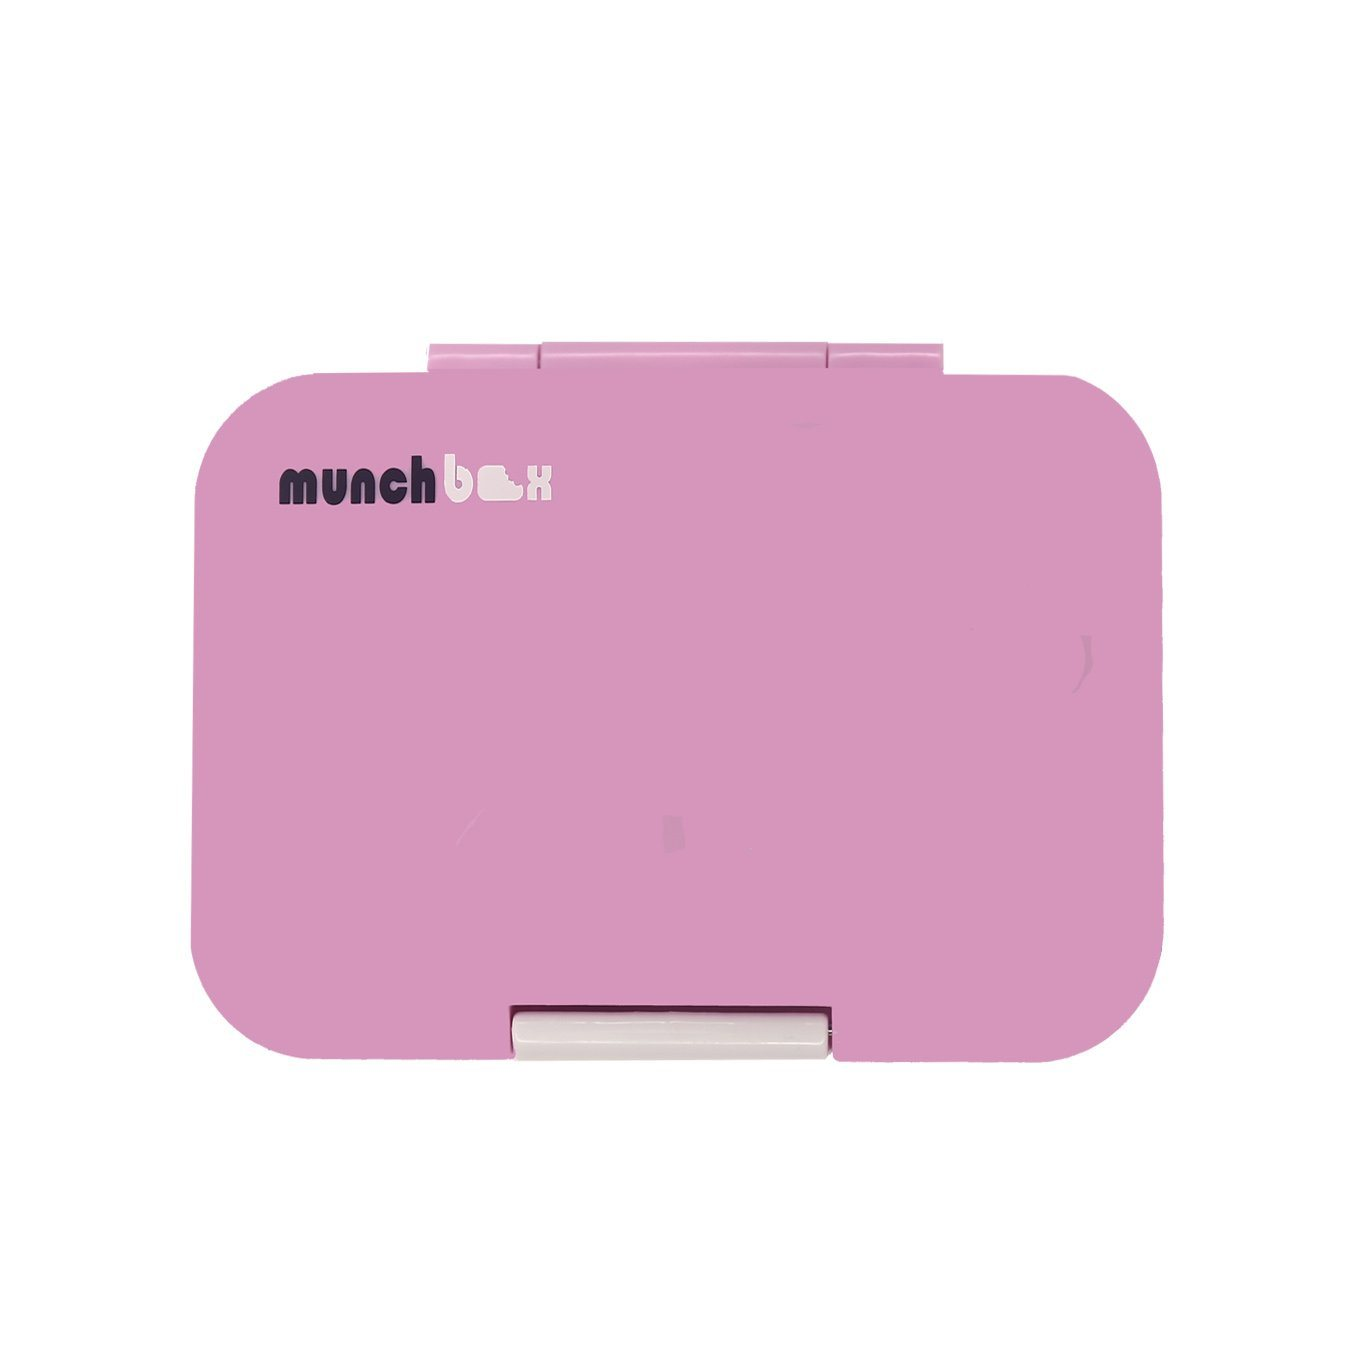 Munchi Snack (Pink Marshmellow/White Latch)